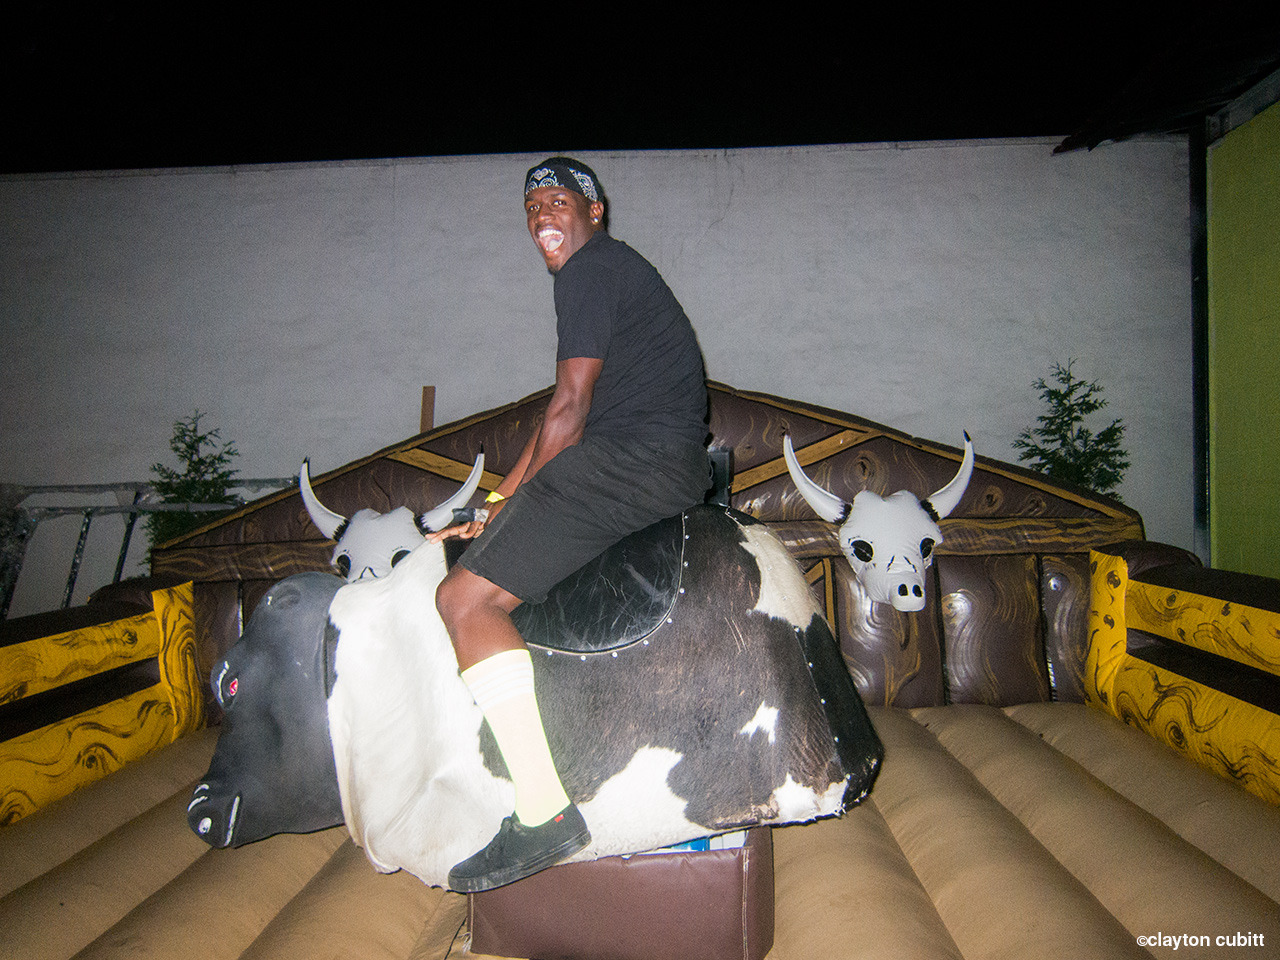 Ro on the mechanical bull, Bushwick  (4248)